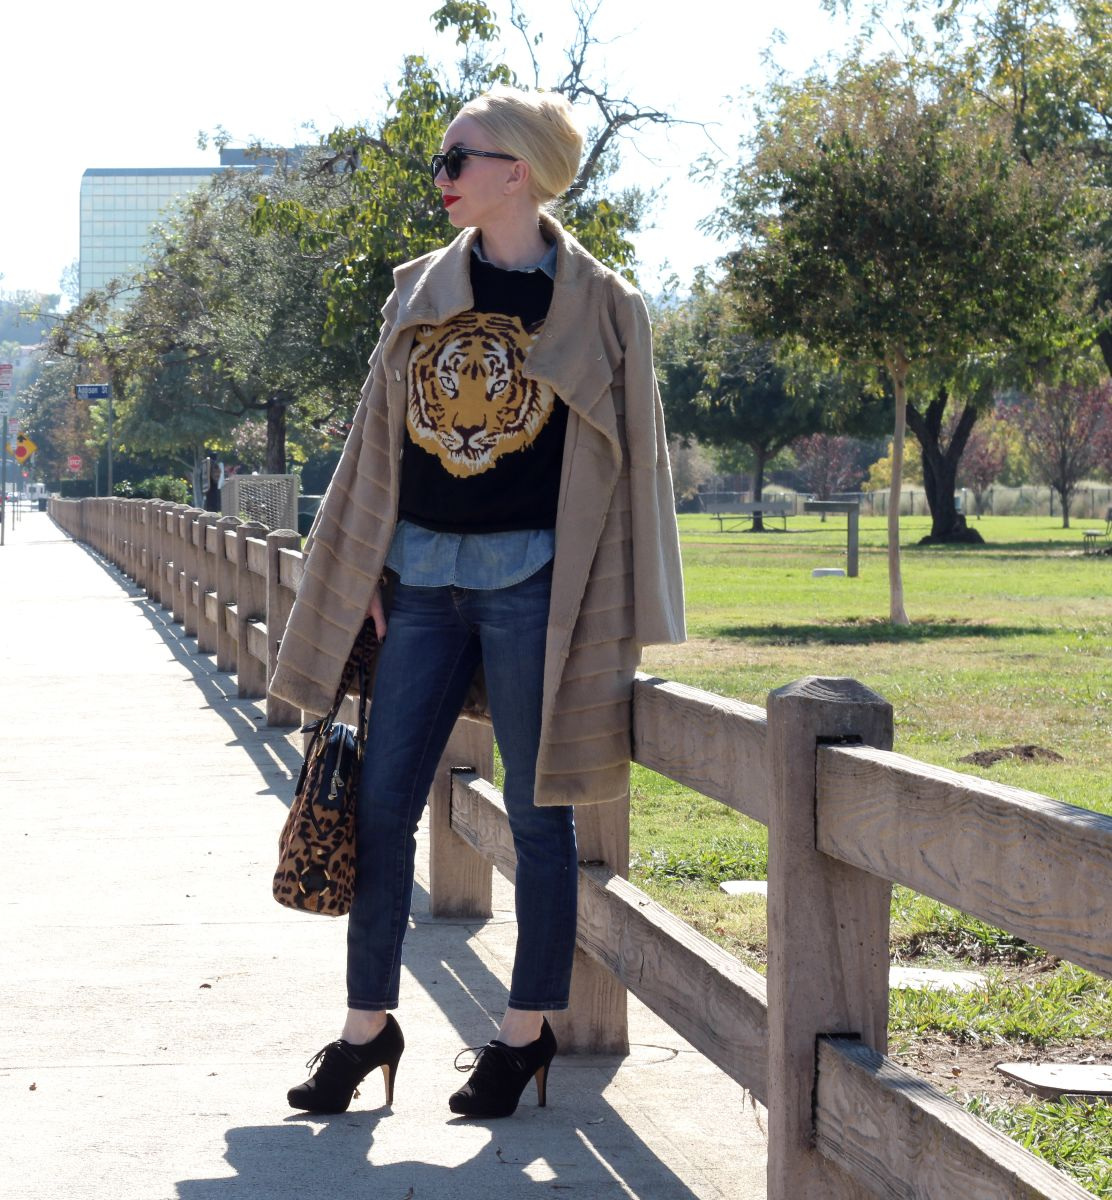 asos tiger sweater, current elliott stilleto jeans, karen walker sunglasses, ysl leopard bag